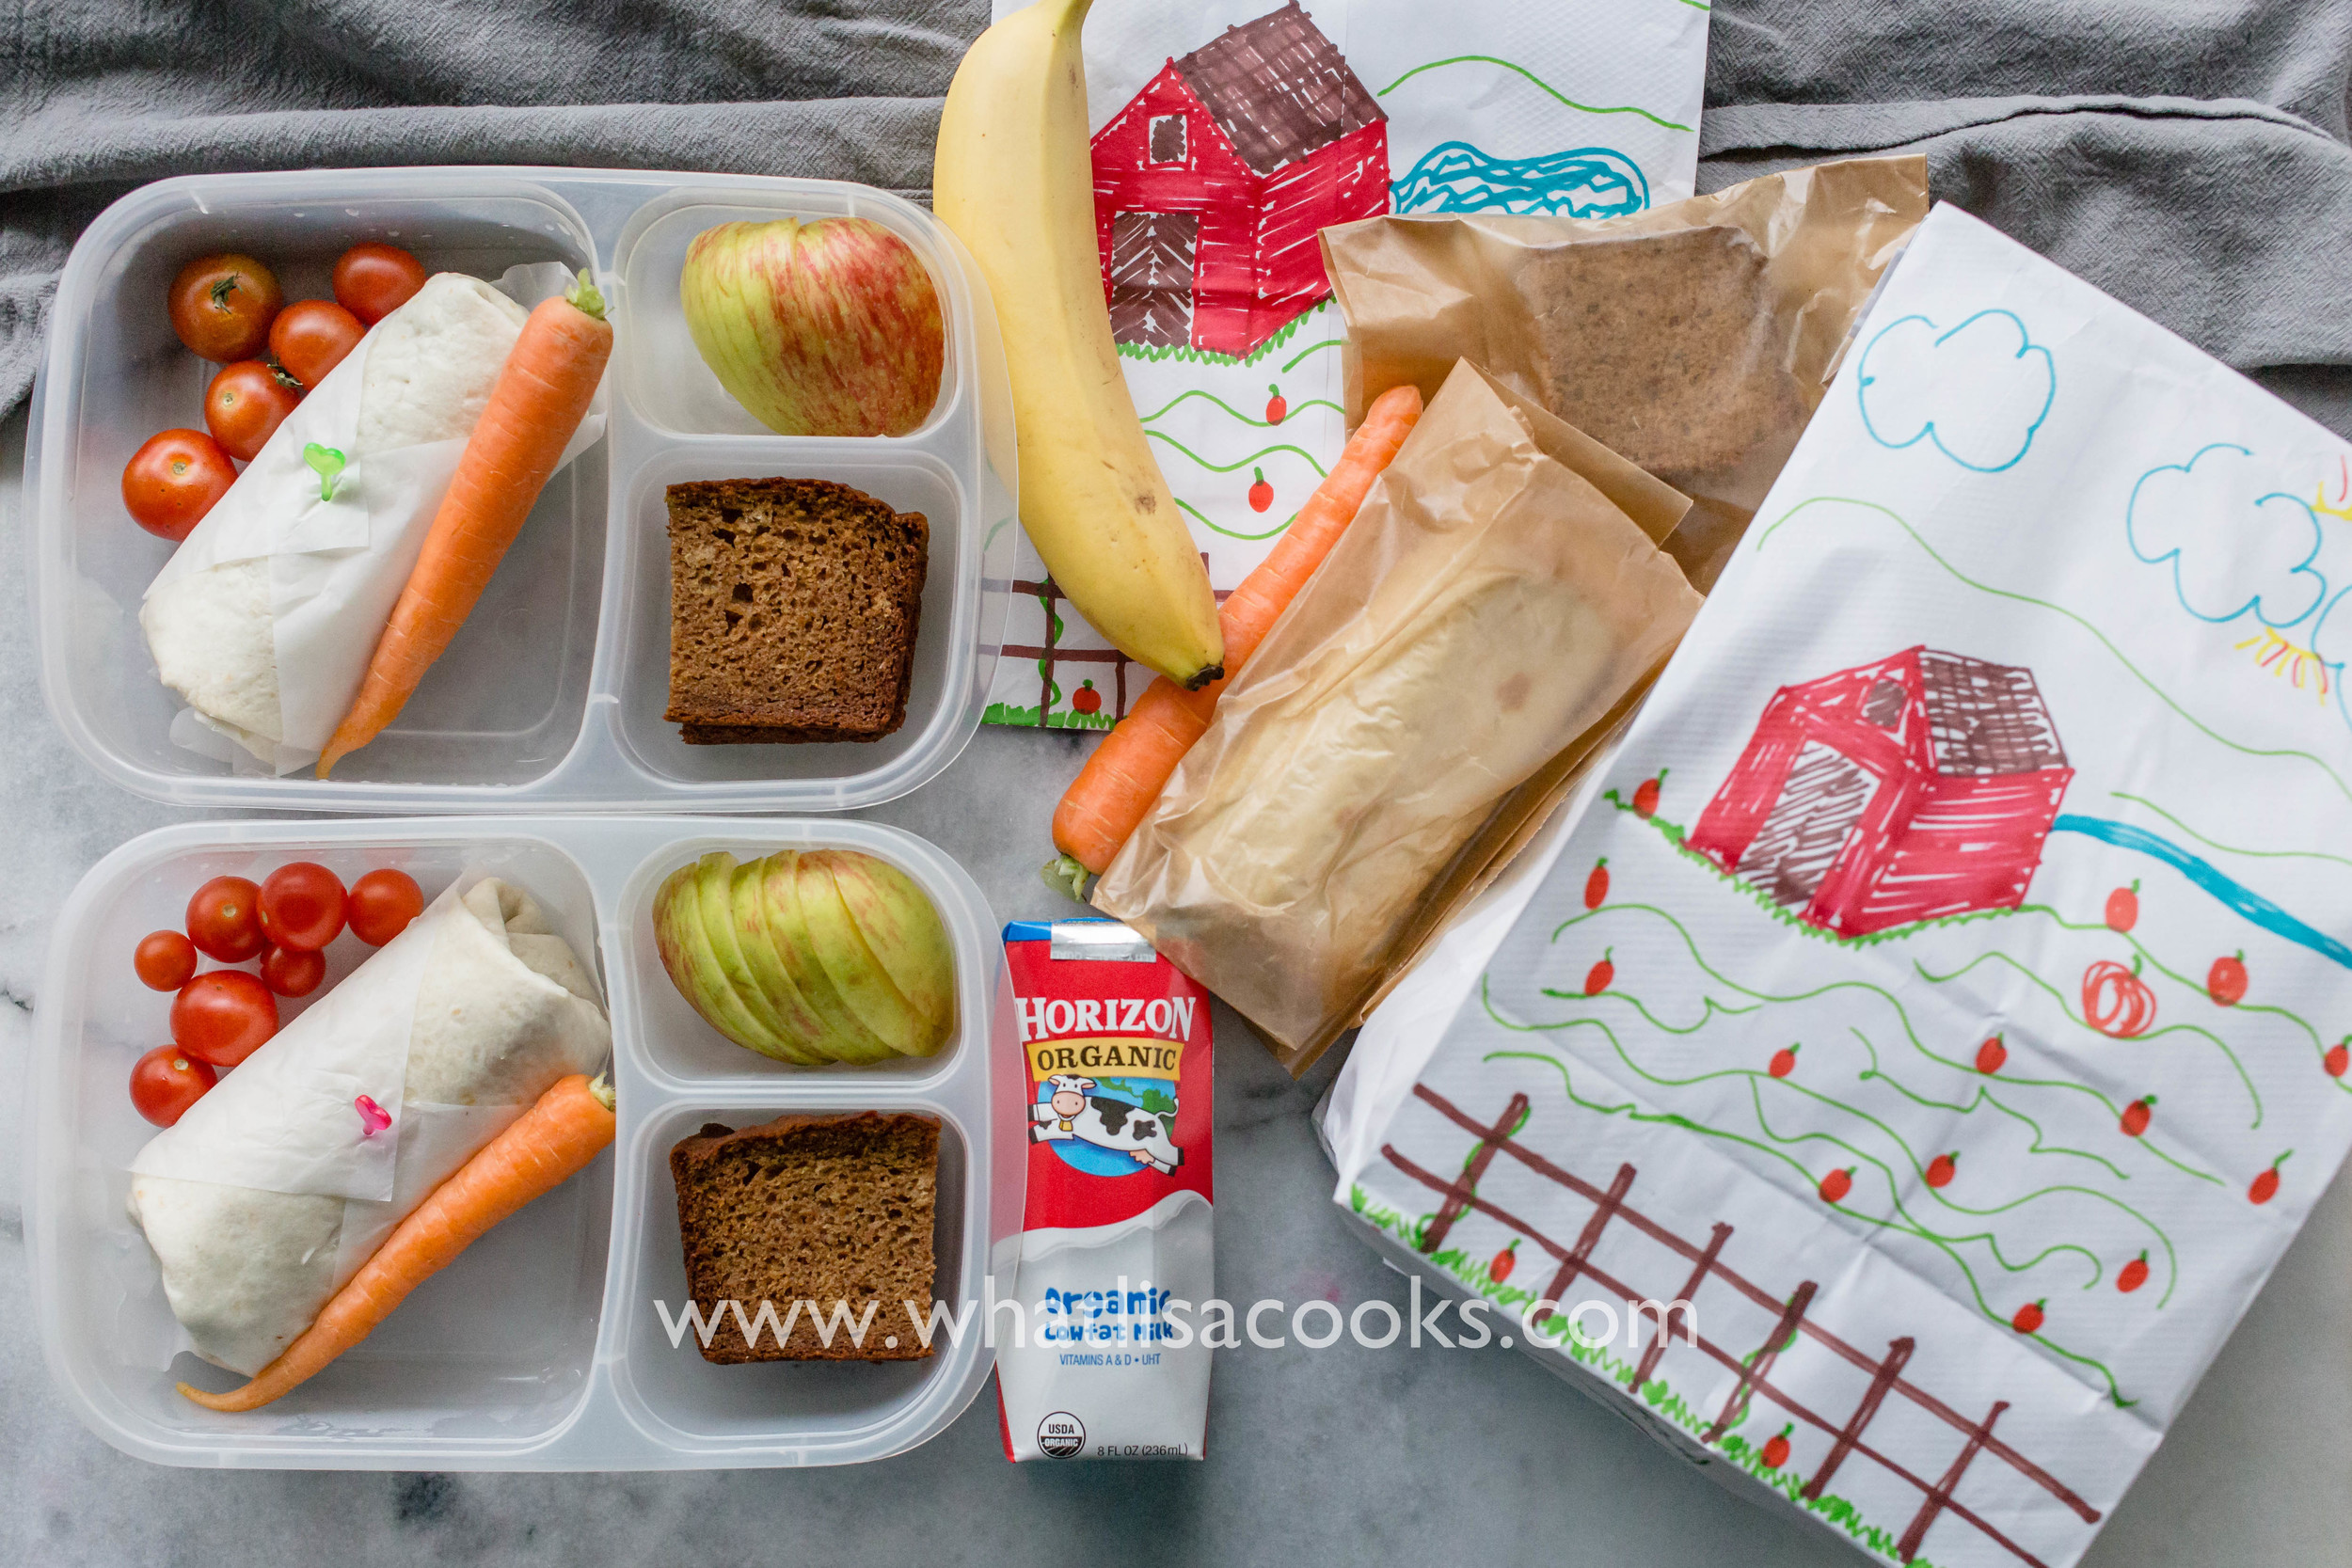 Burritos - two have just a piece of parchment around them, and two are in a wax paper bag - either option keeps other foods from touching them. Whole tomatoes, whole carrot, banana bread. Two had sliced apples and two had a whole banana.